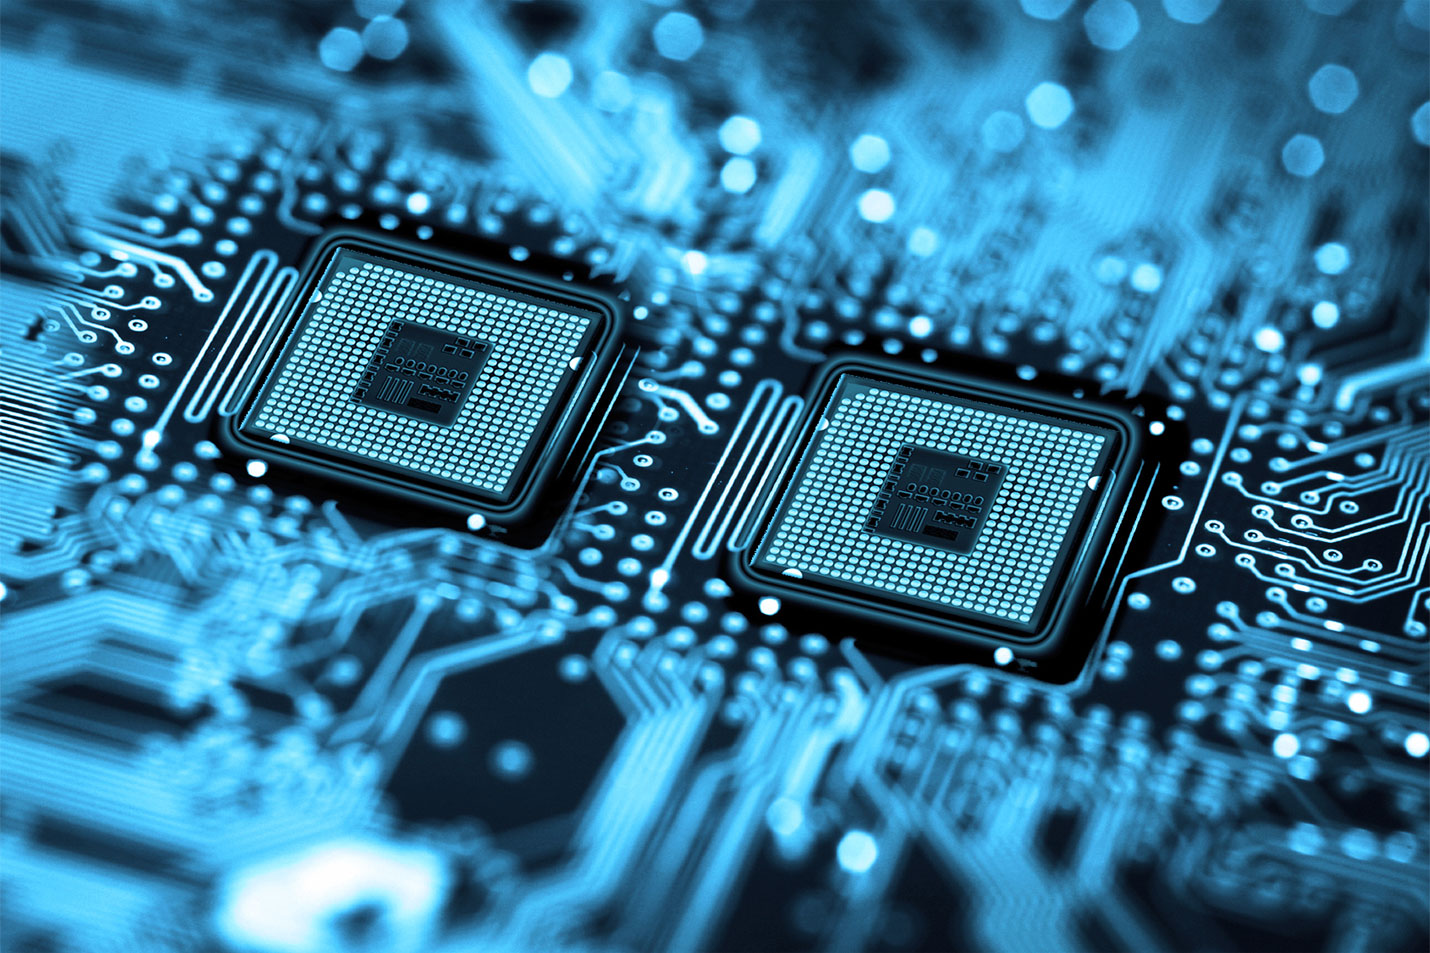 Pcb Laminate Considerations For 4g Based M2m Designs Circuit Design Electronic Electrical Blog